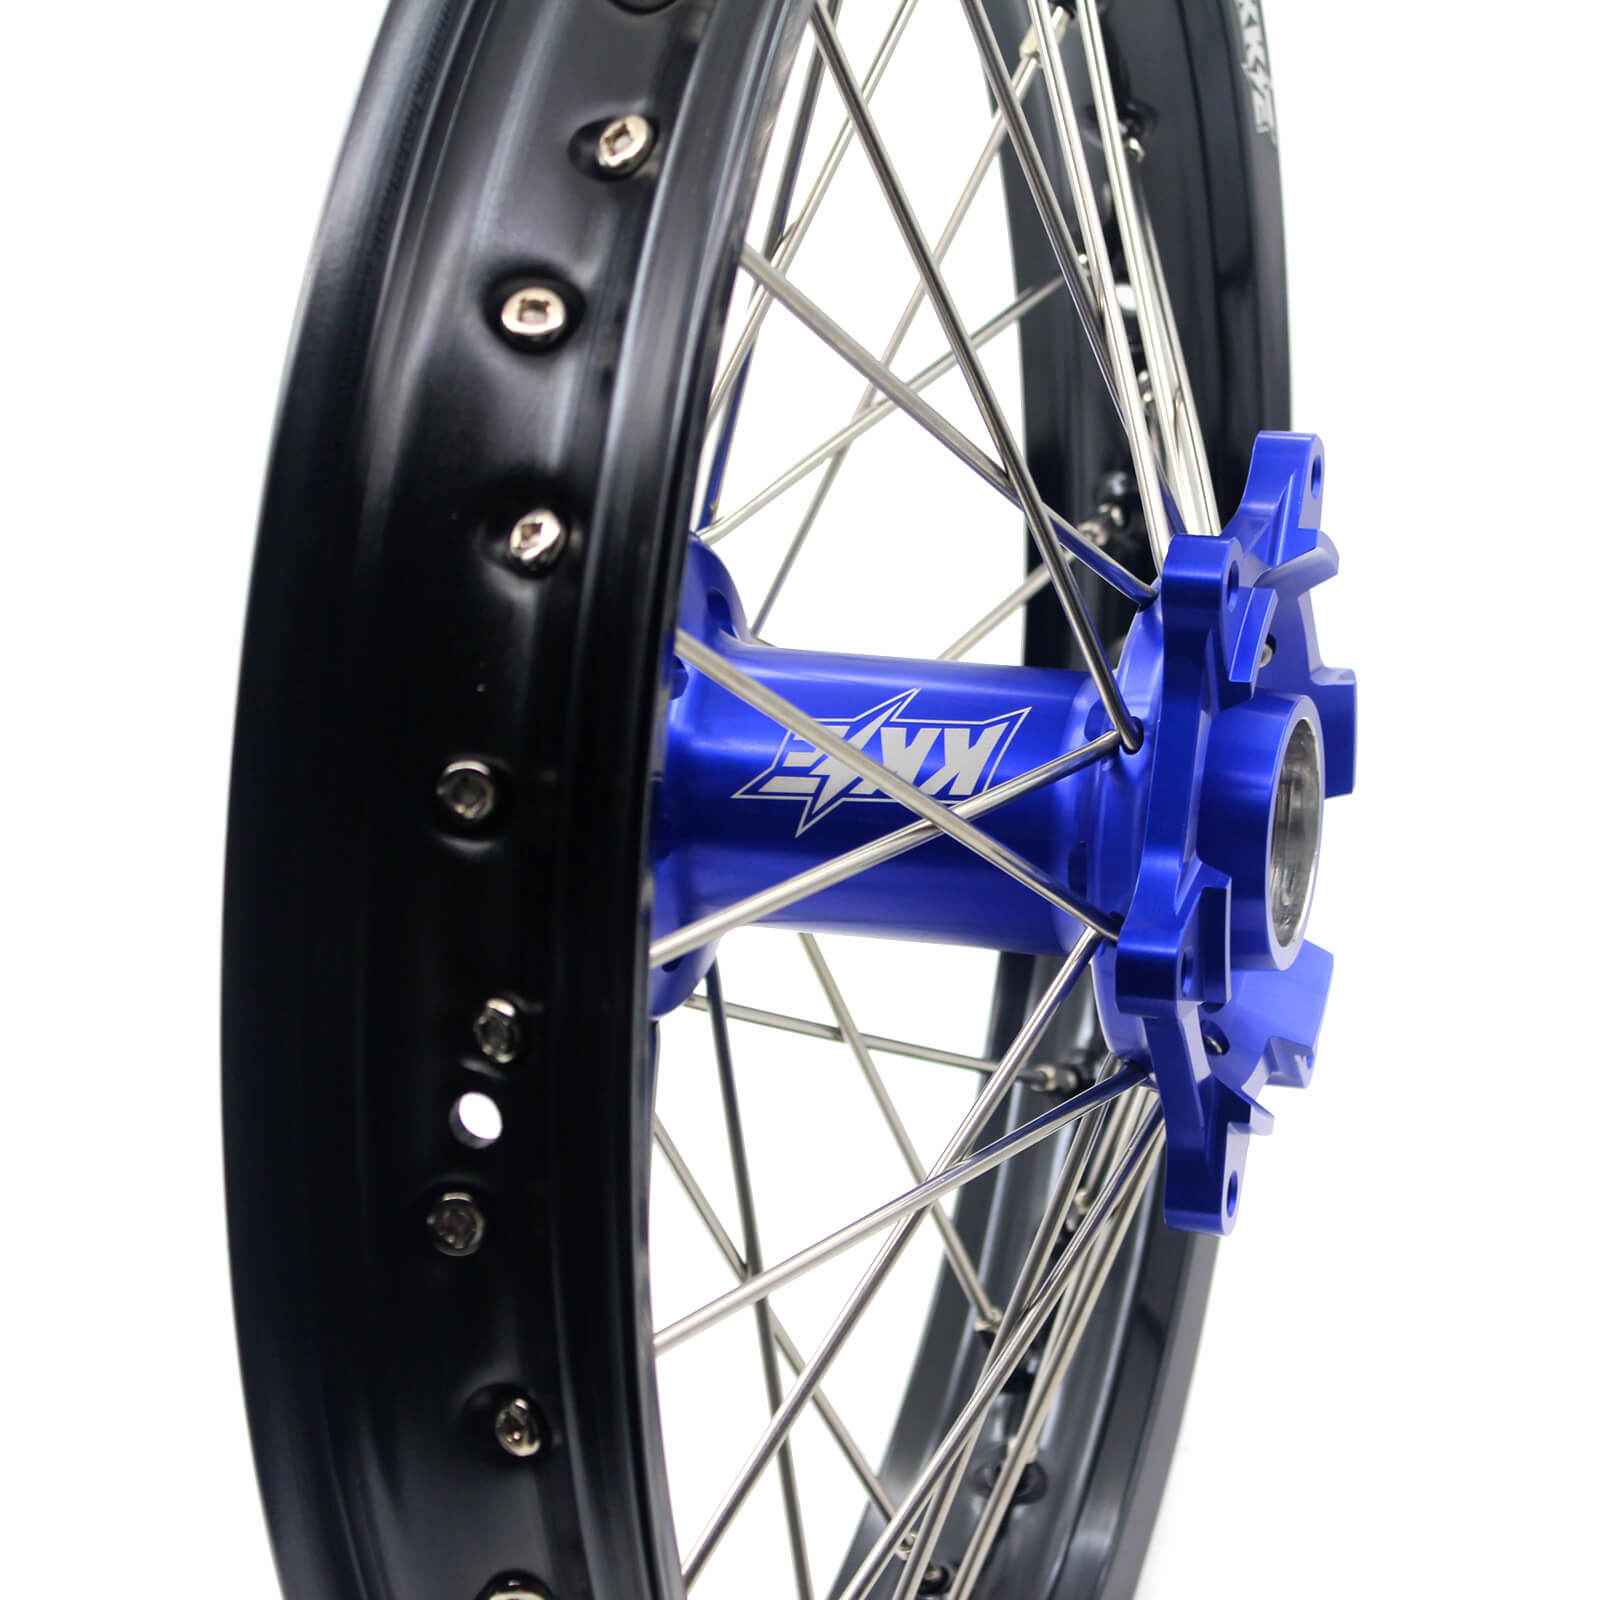 21/18 ENDURO WHEELS SET FOR KTM EXC EXC-F XCW XC 125-530 2003-2019 BLUE HUBS - KKE Racing